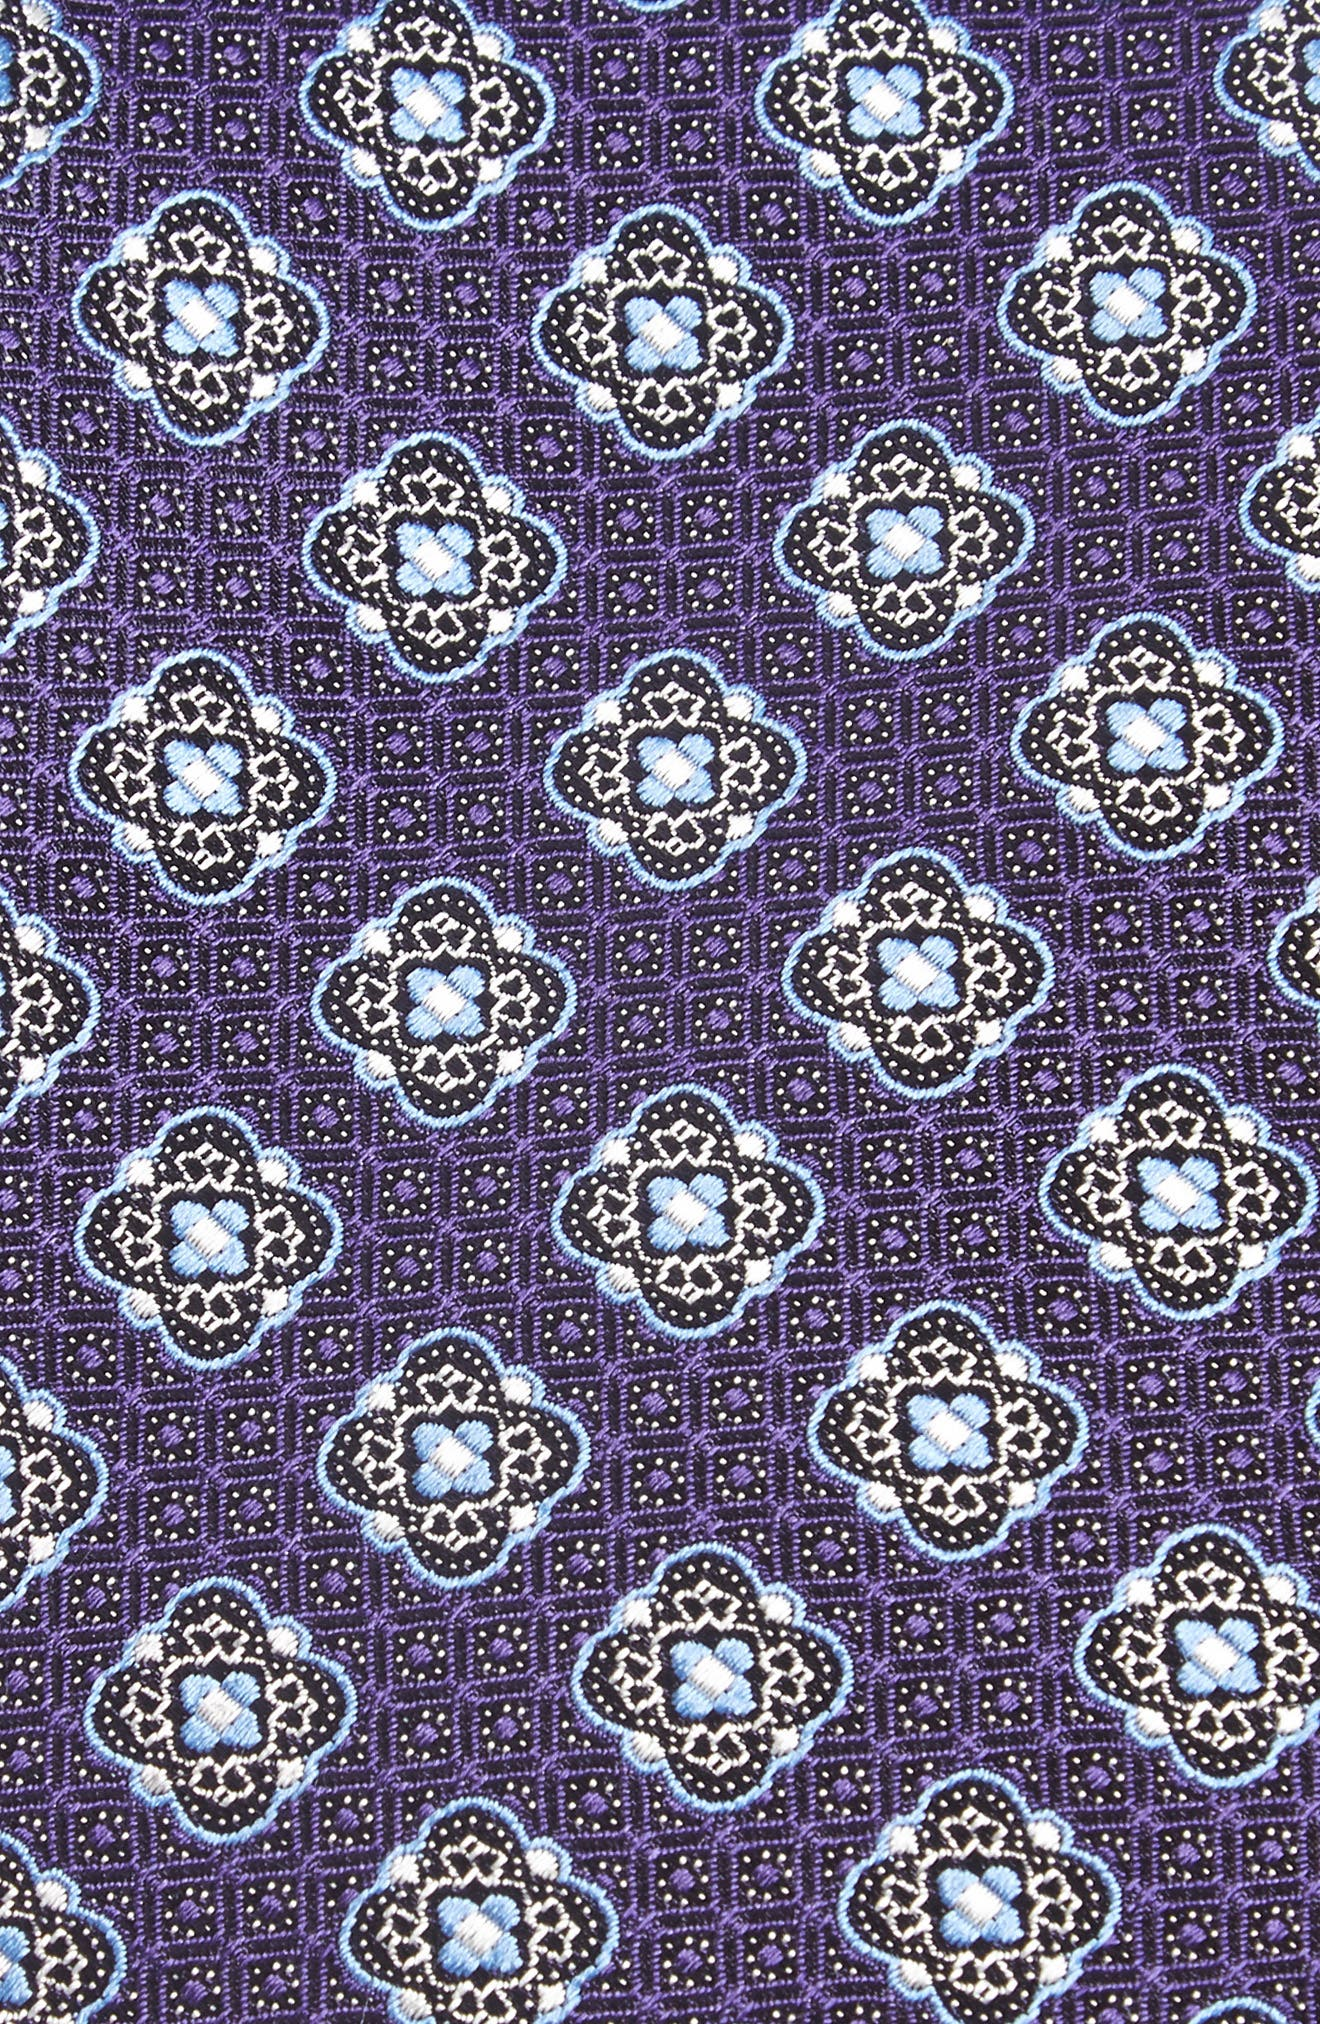 Medallion Silk Tie,                             Alternate thumbnail 2, color,                             PURPLE